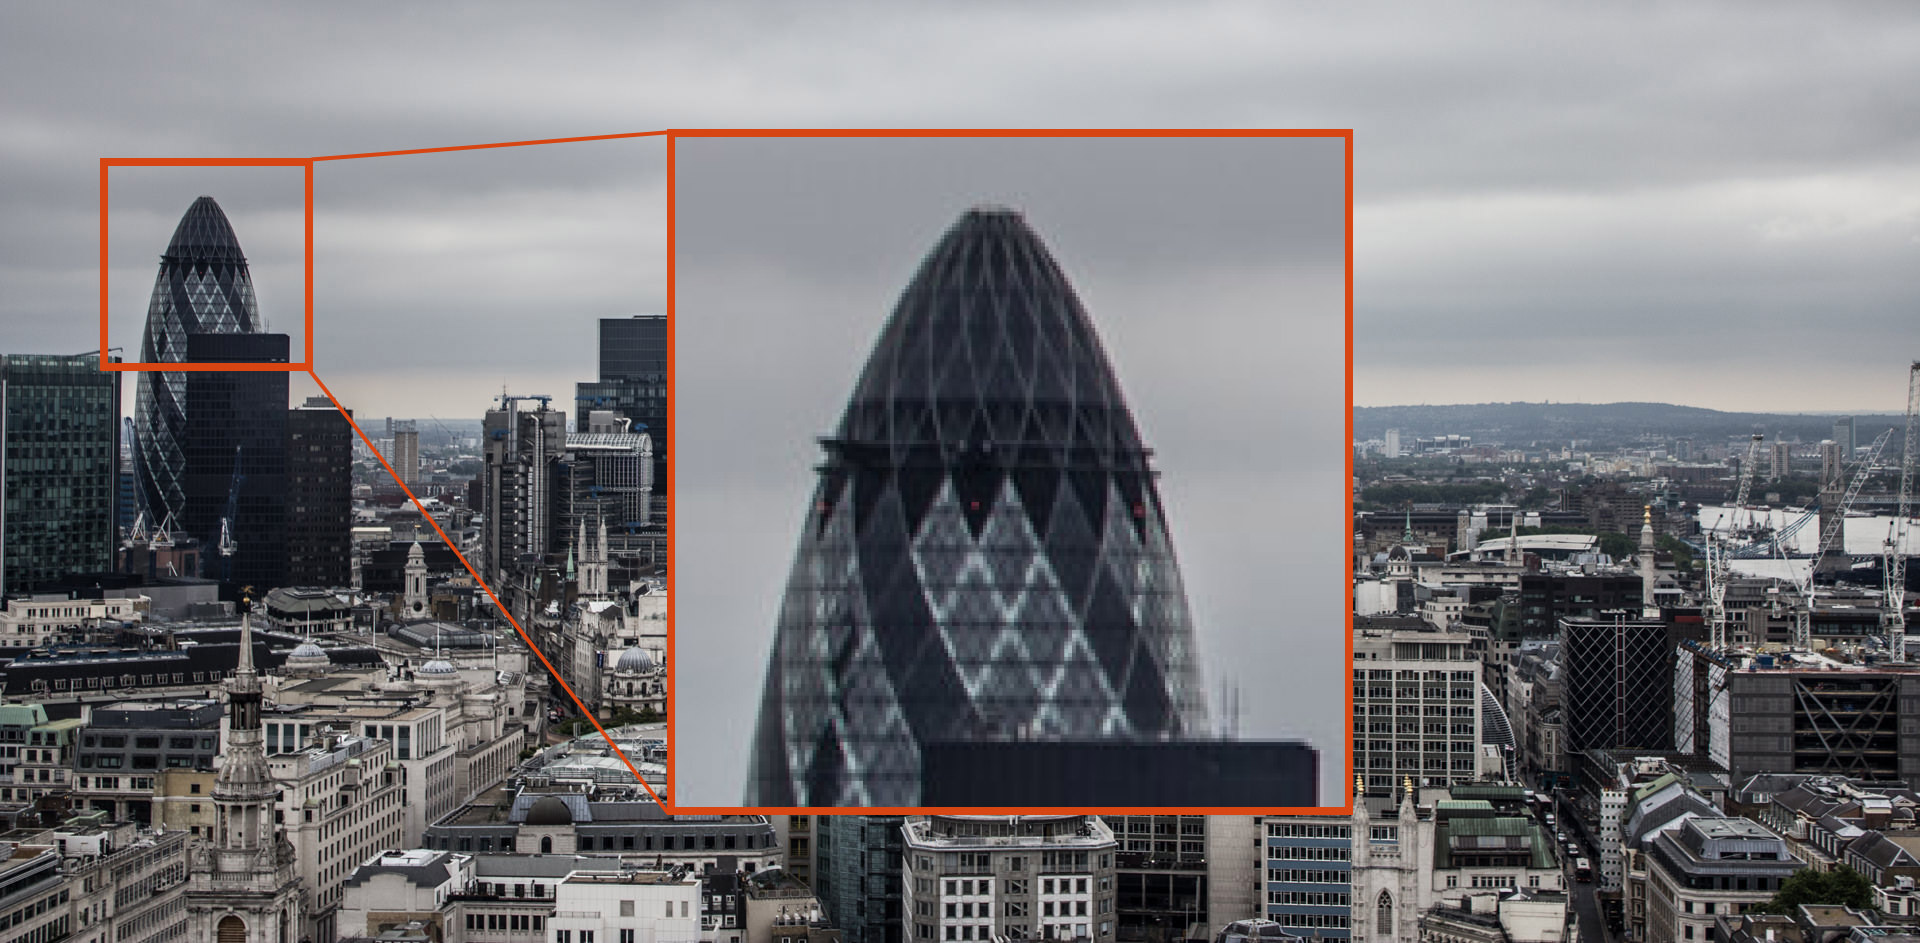 Zoomed in view of The Gherkin, London, caused by a low aperture